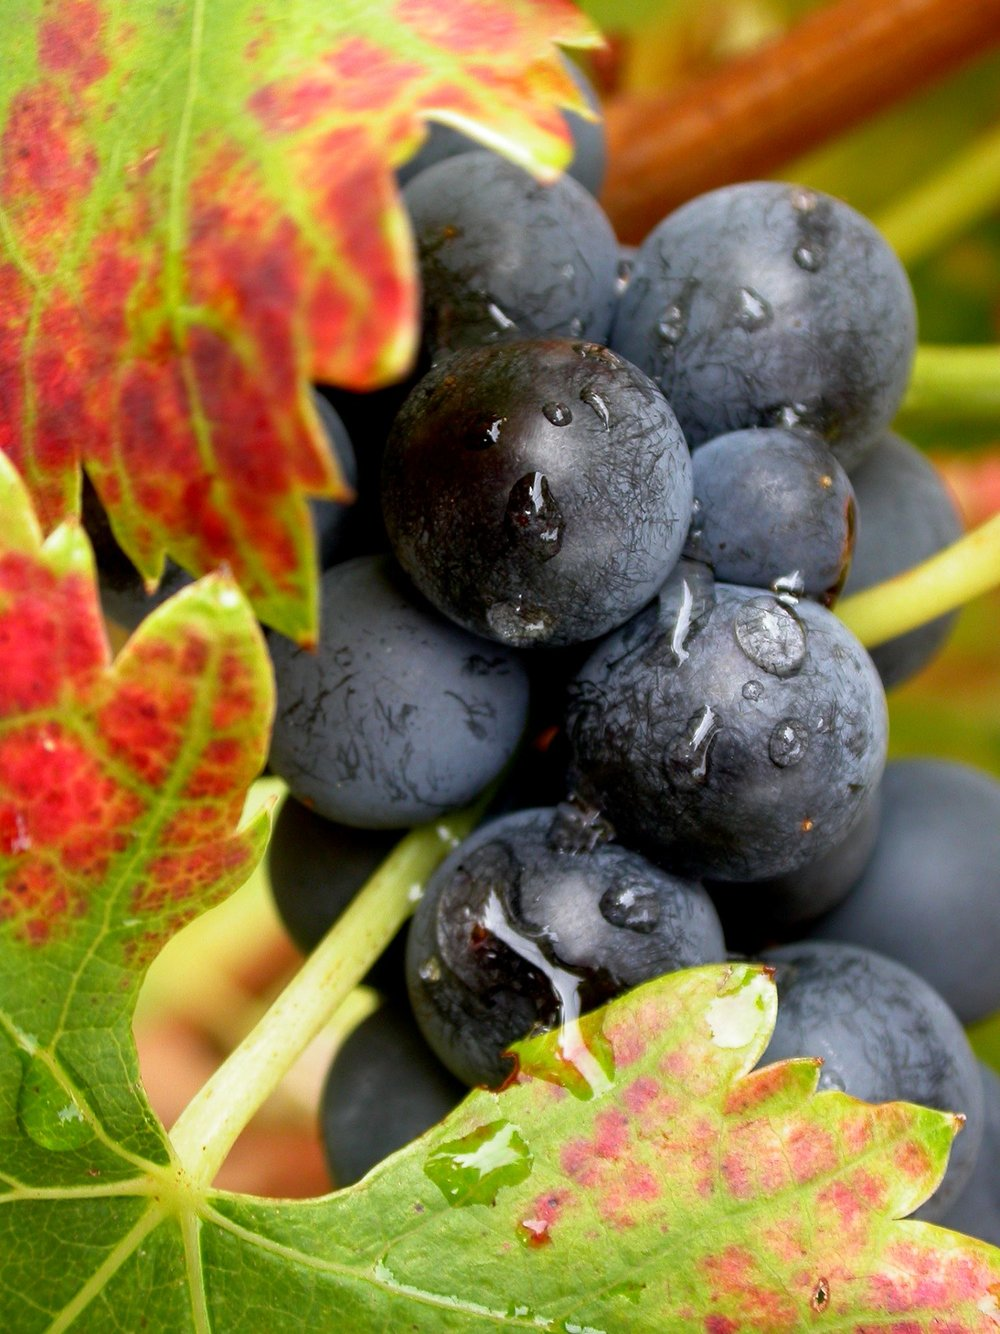 Chene Bleu grapes